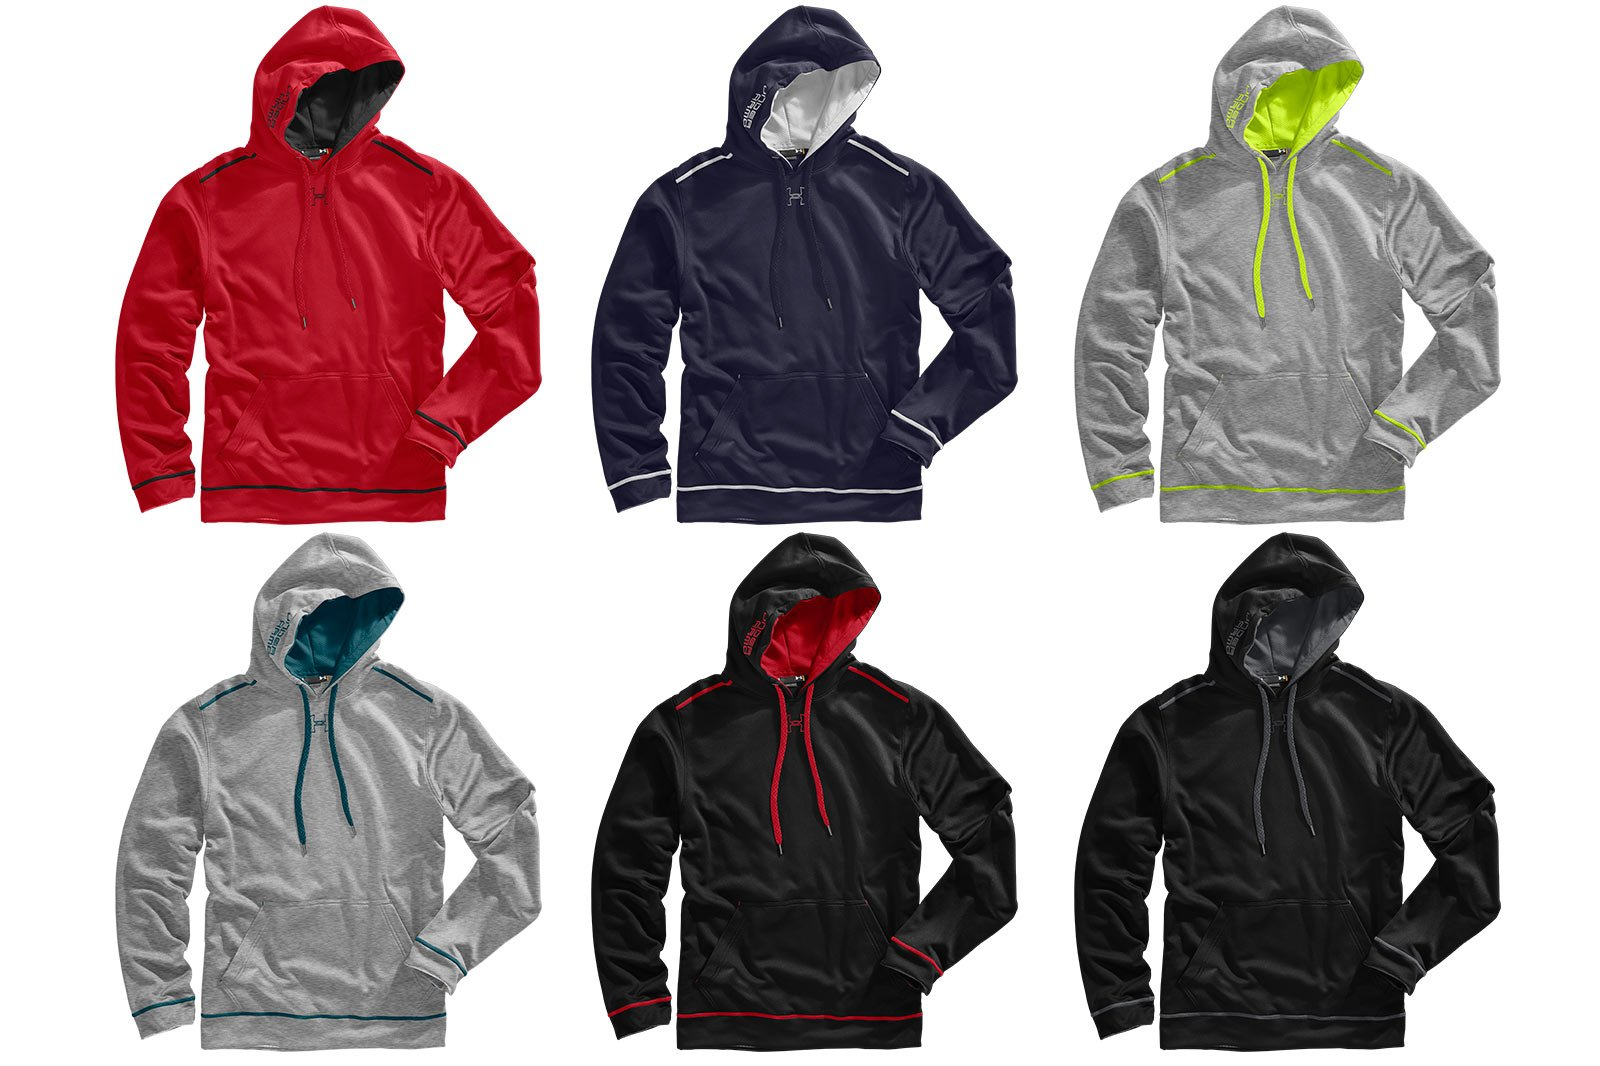 Colorways example - six hoodies with a range of colors